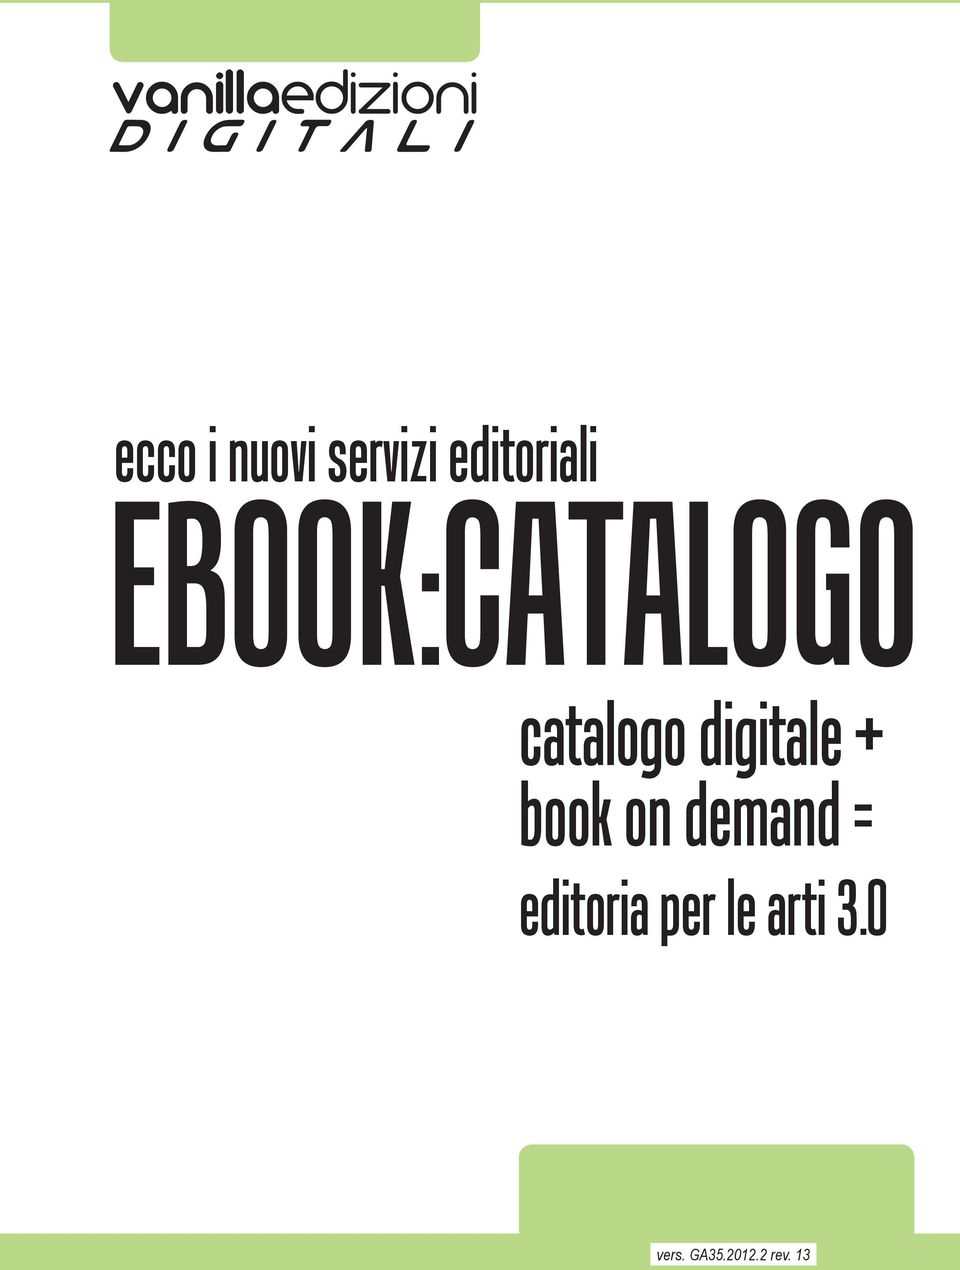 book on demand = editoria per le